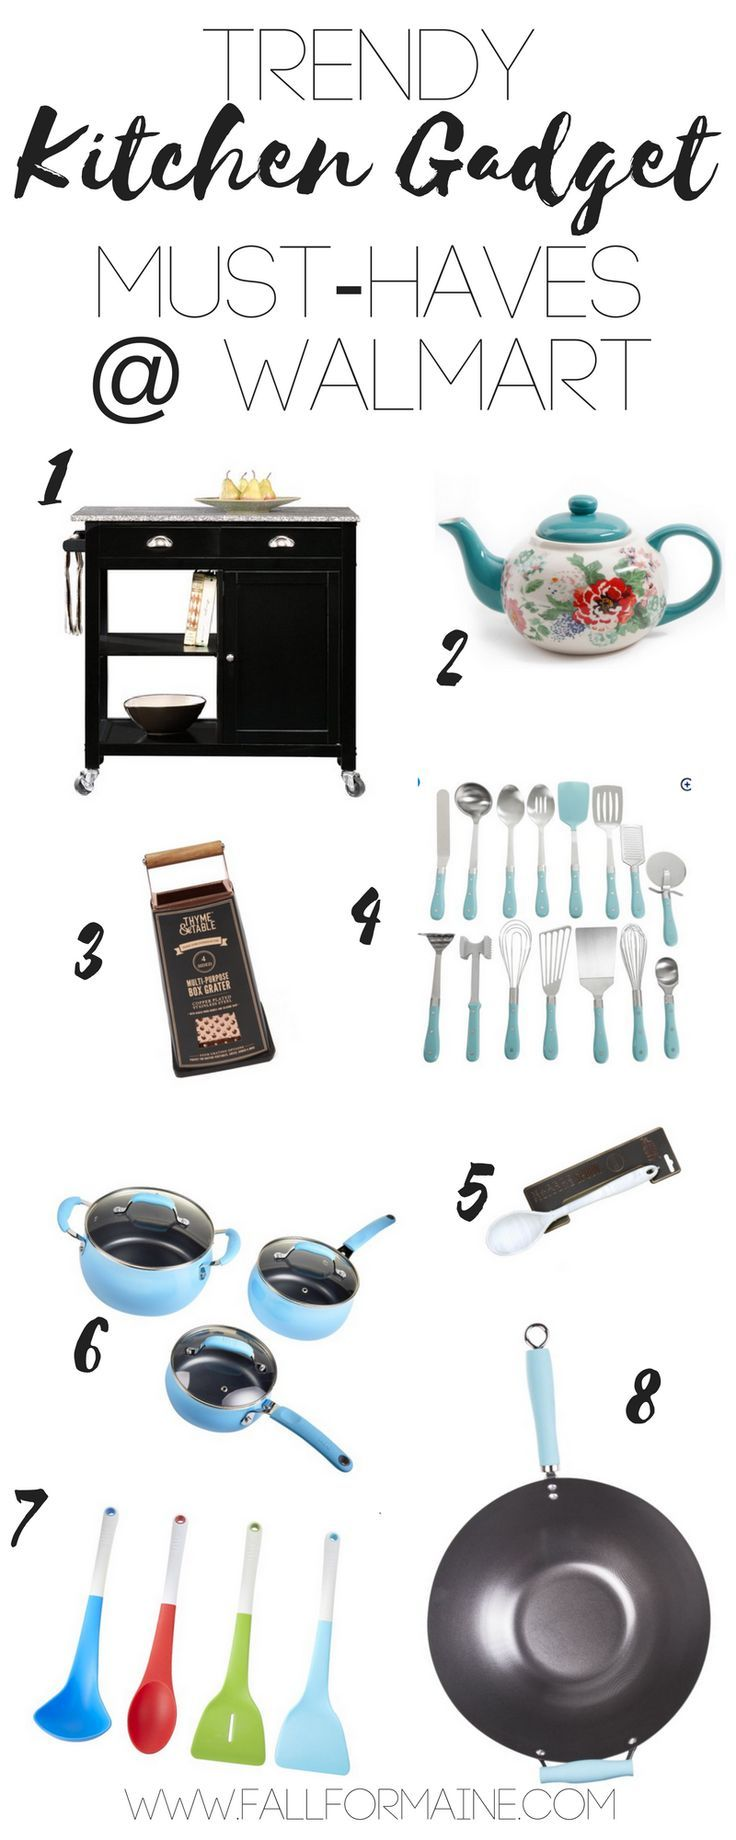 new trendy kitchen gadgets must haves at walmart stylish kitchen dining area design on kitchen remodel must haves id=82685